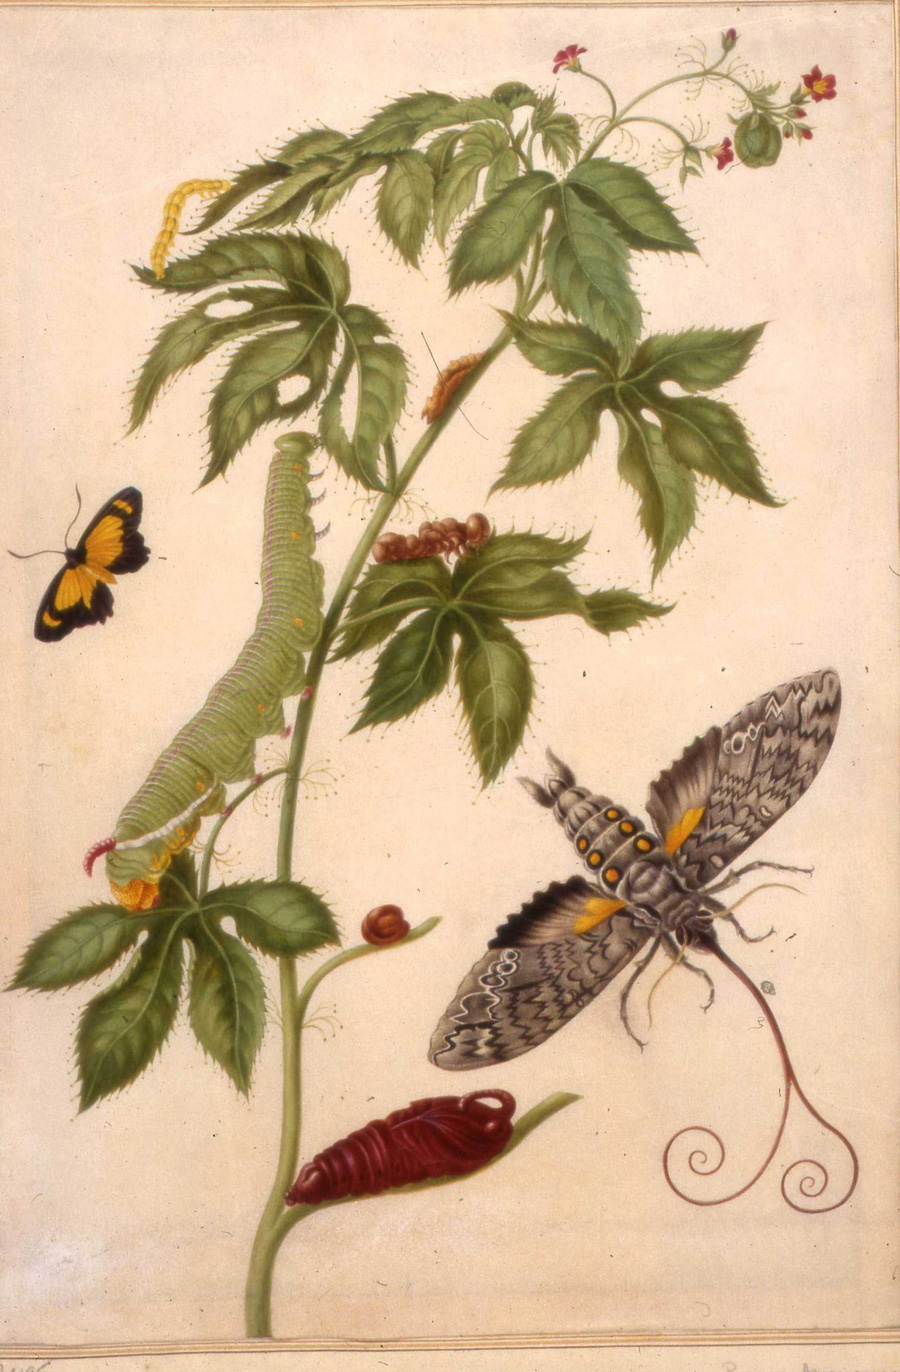 A sprig from a plant with small red flowers  [Jatropha gossypifolia] . The large green caterpillar became the liver-coloured chrysalis then the large grey moth with six orange/yellow spots on its body  [Cocytius antaeus] ; a yellow butterfly.  Maria Merian, the first European naturalist to take note of and include all life stages of the butterfly in a single picture plane. Plate 38    Metamorphosis insectorum Surinamensium,  1705.